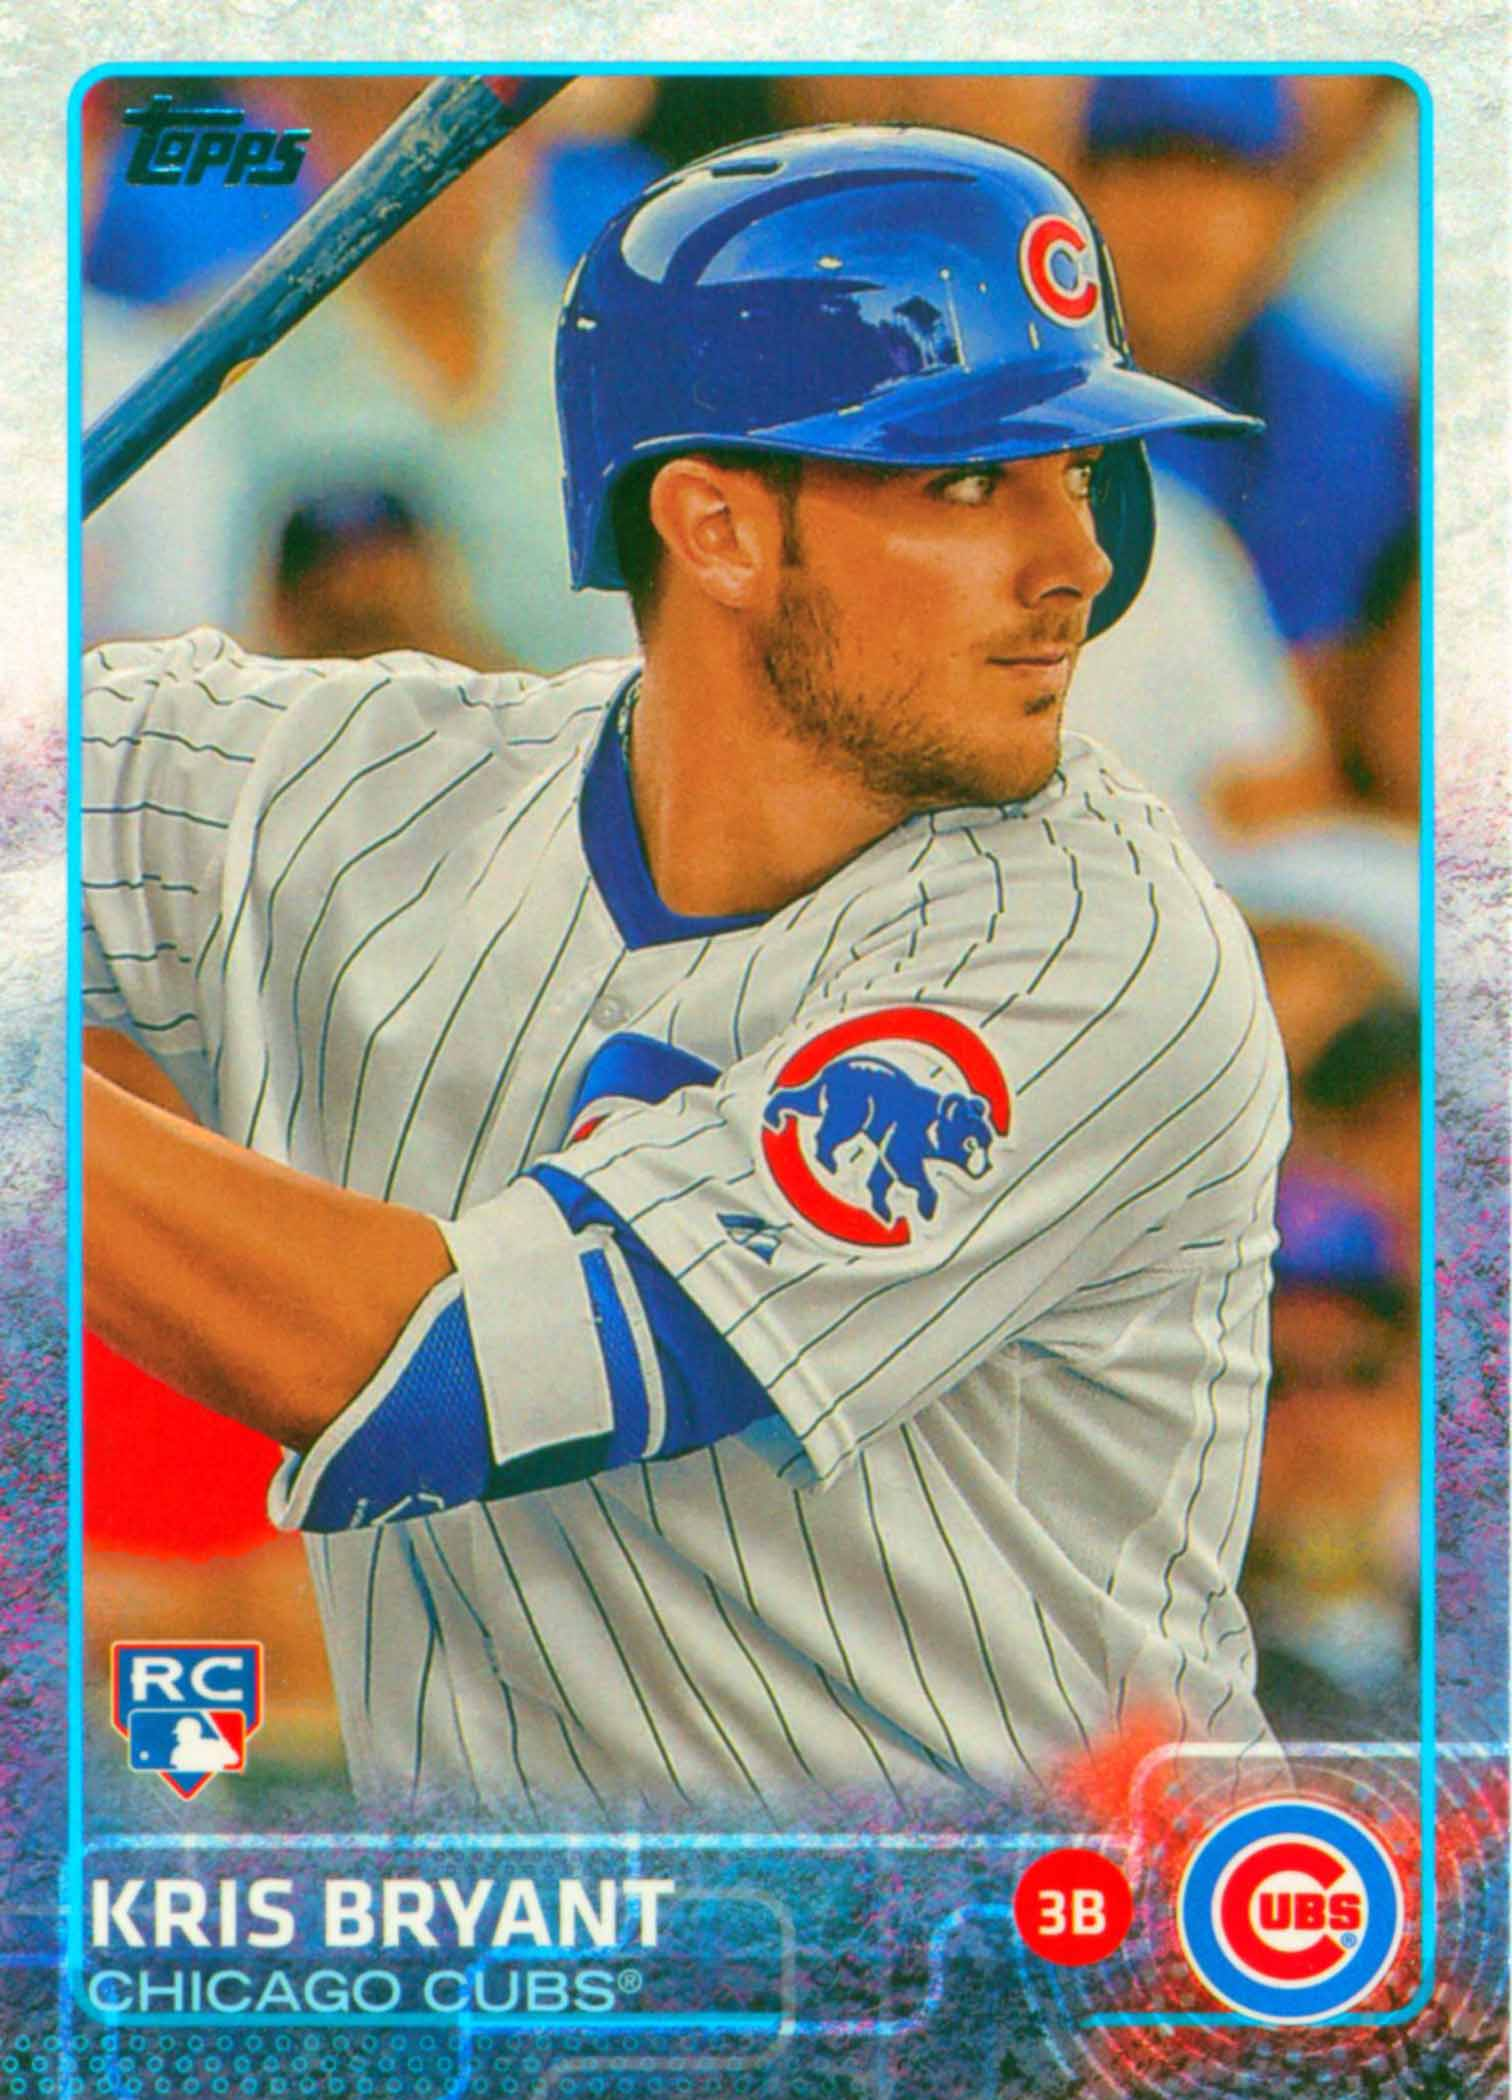 2016 Topps 100 Years at Wrigley Field